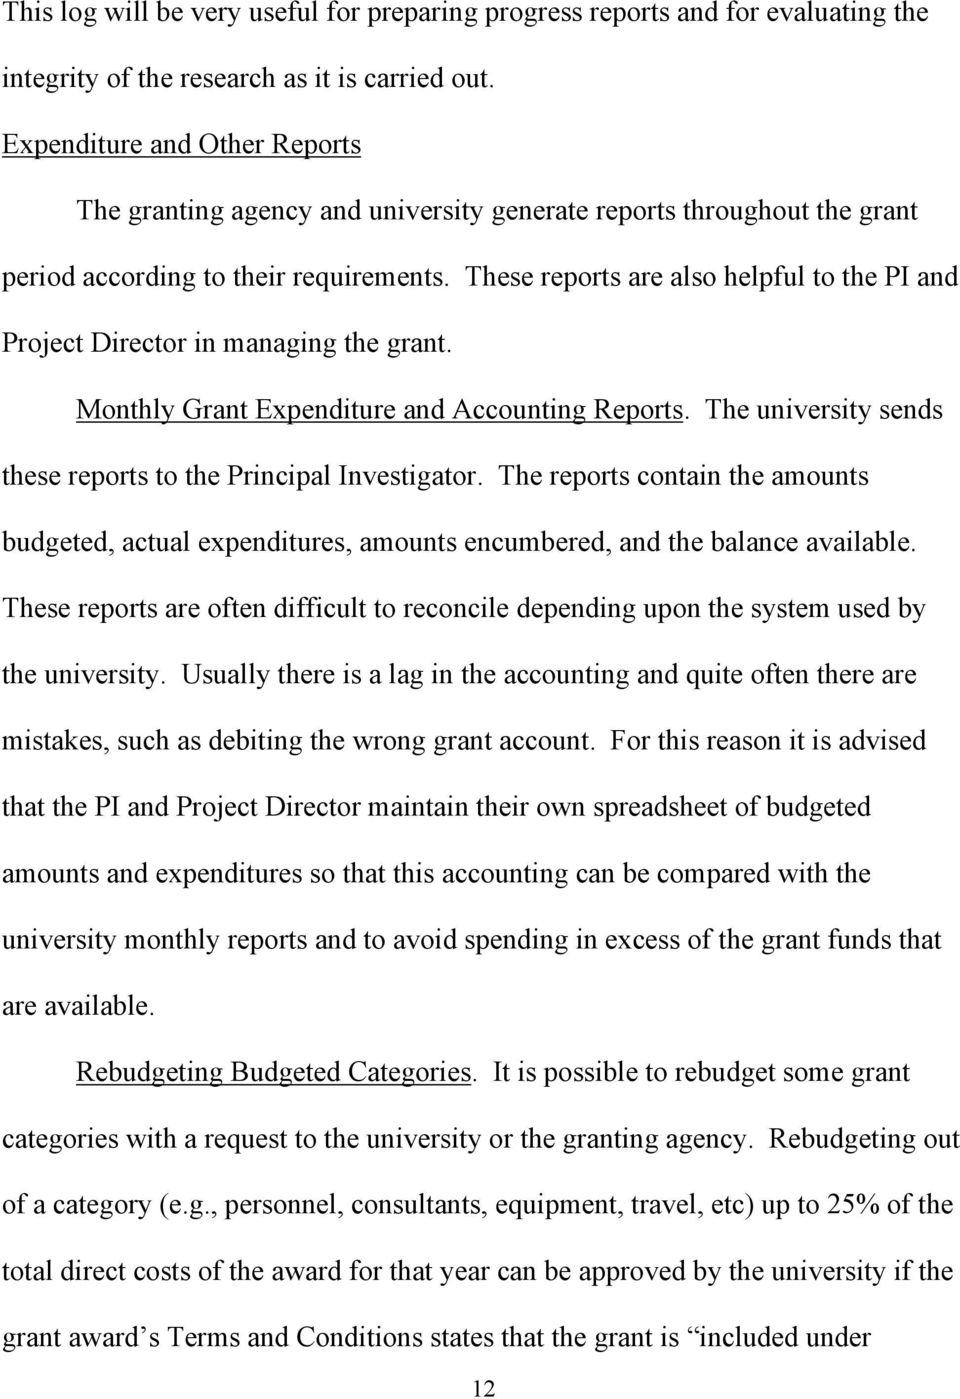 These reports are also helpful to the PI and Project Director in managing the grant. Monthly Grant Expenditure and Accounting Reports. The university sends these reports to the Principal Investigator.